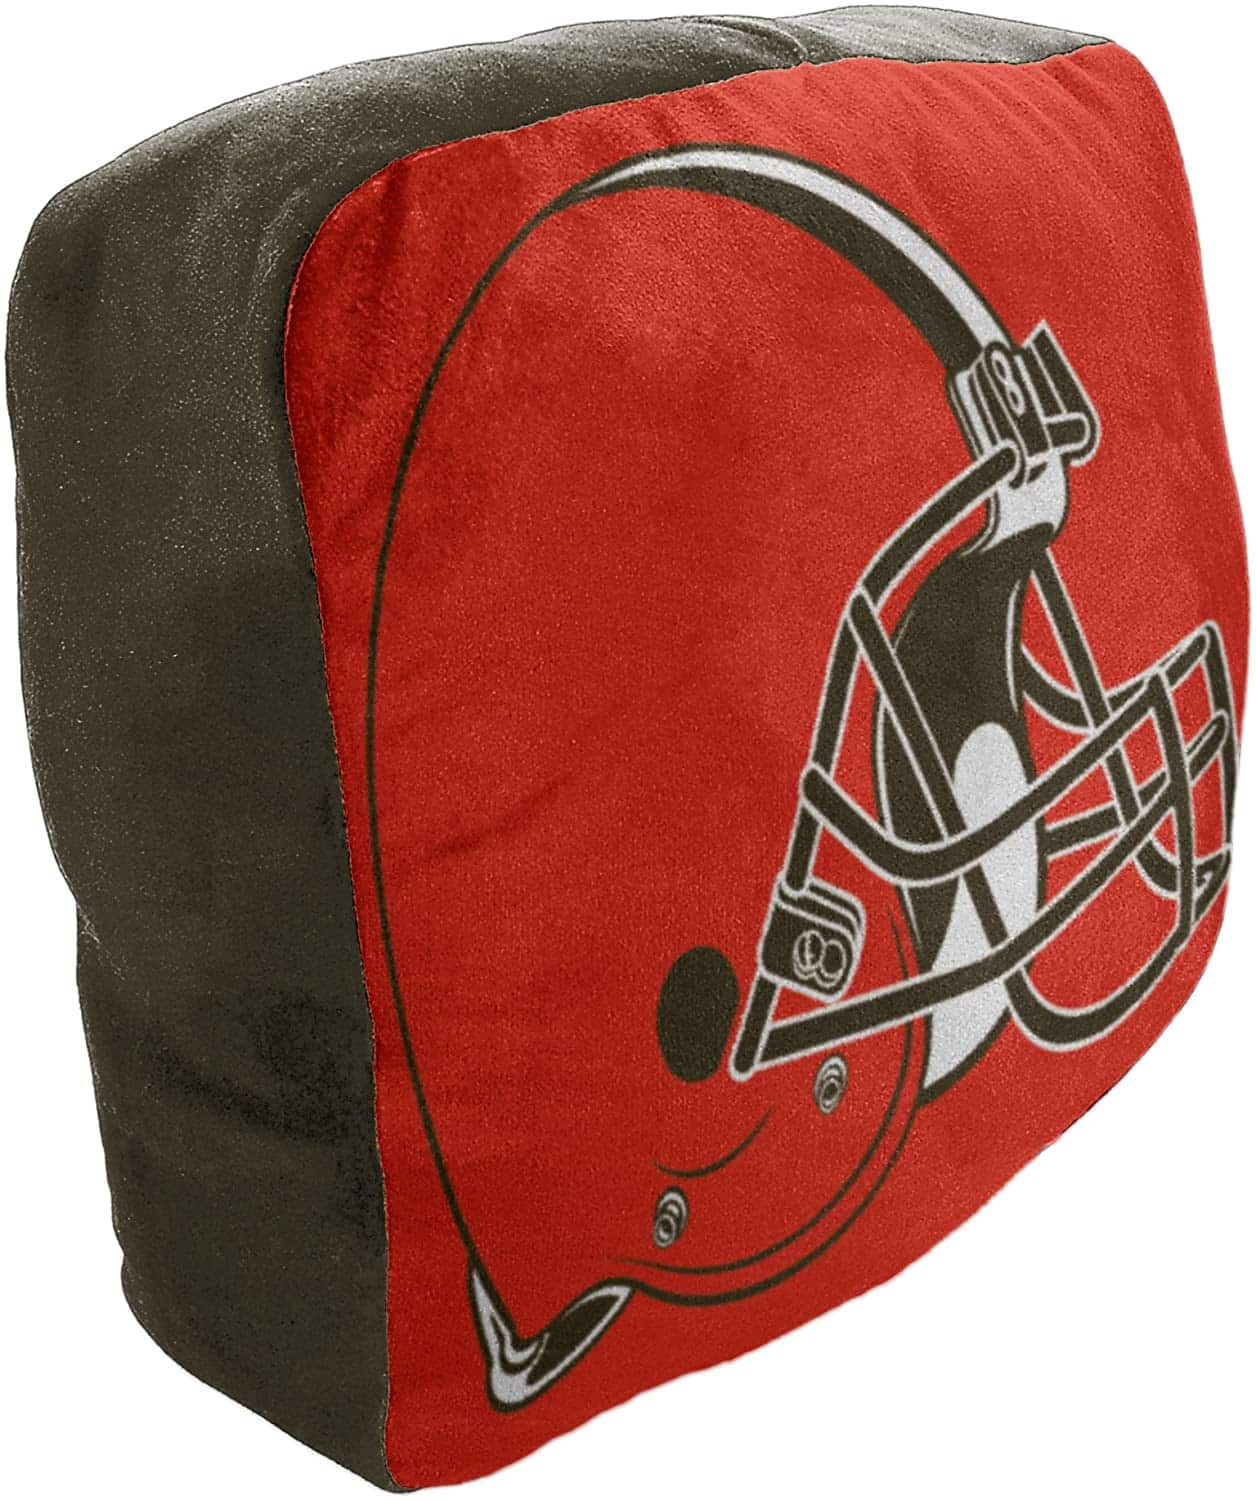 Officially Licensed NFL Cloud Pillow (Falcons, Browns, Broncos, Titans) - $5.99 - Amazon